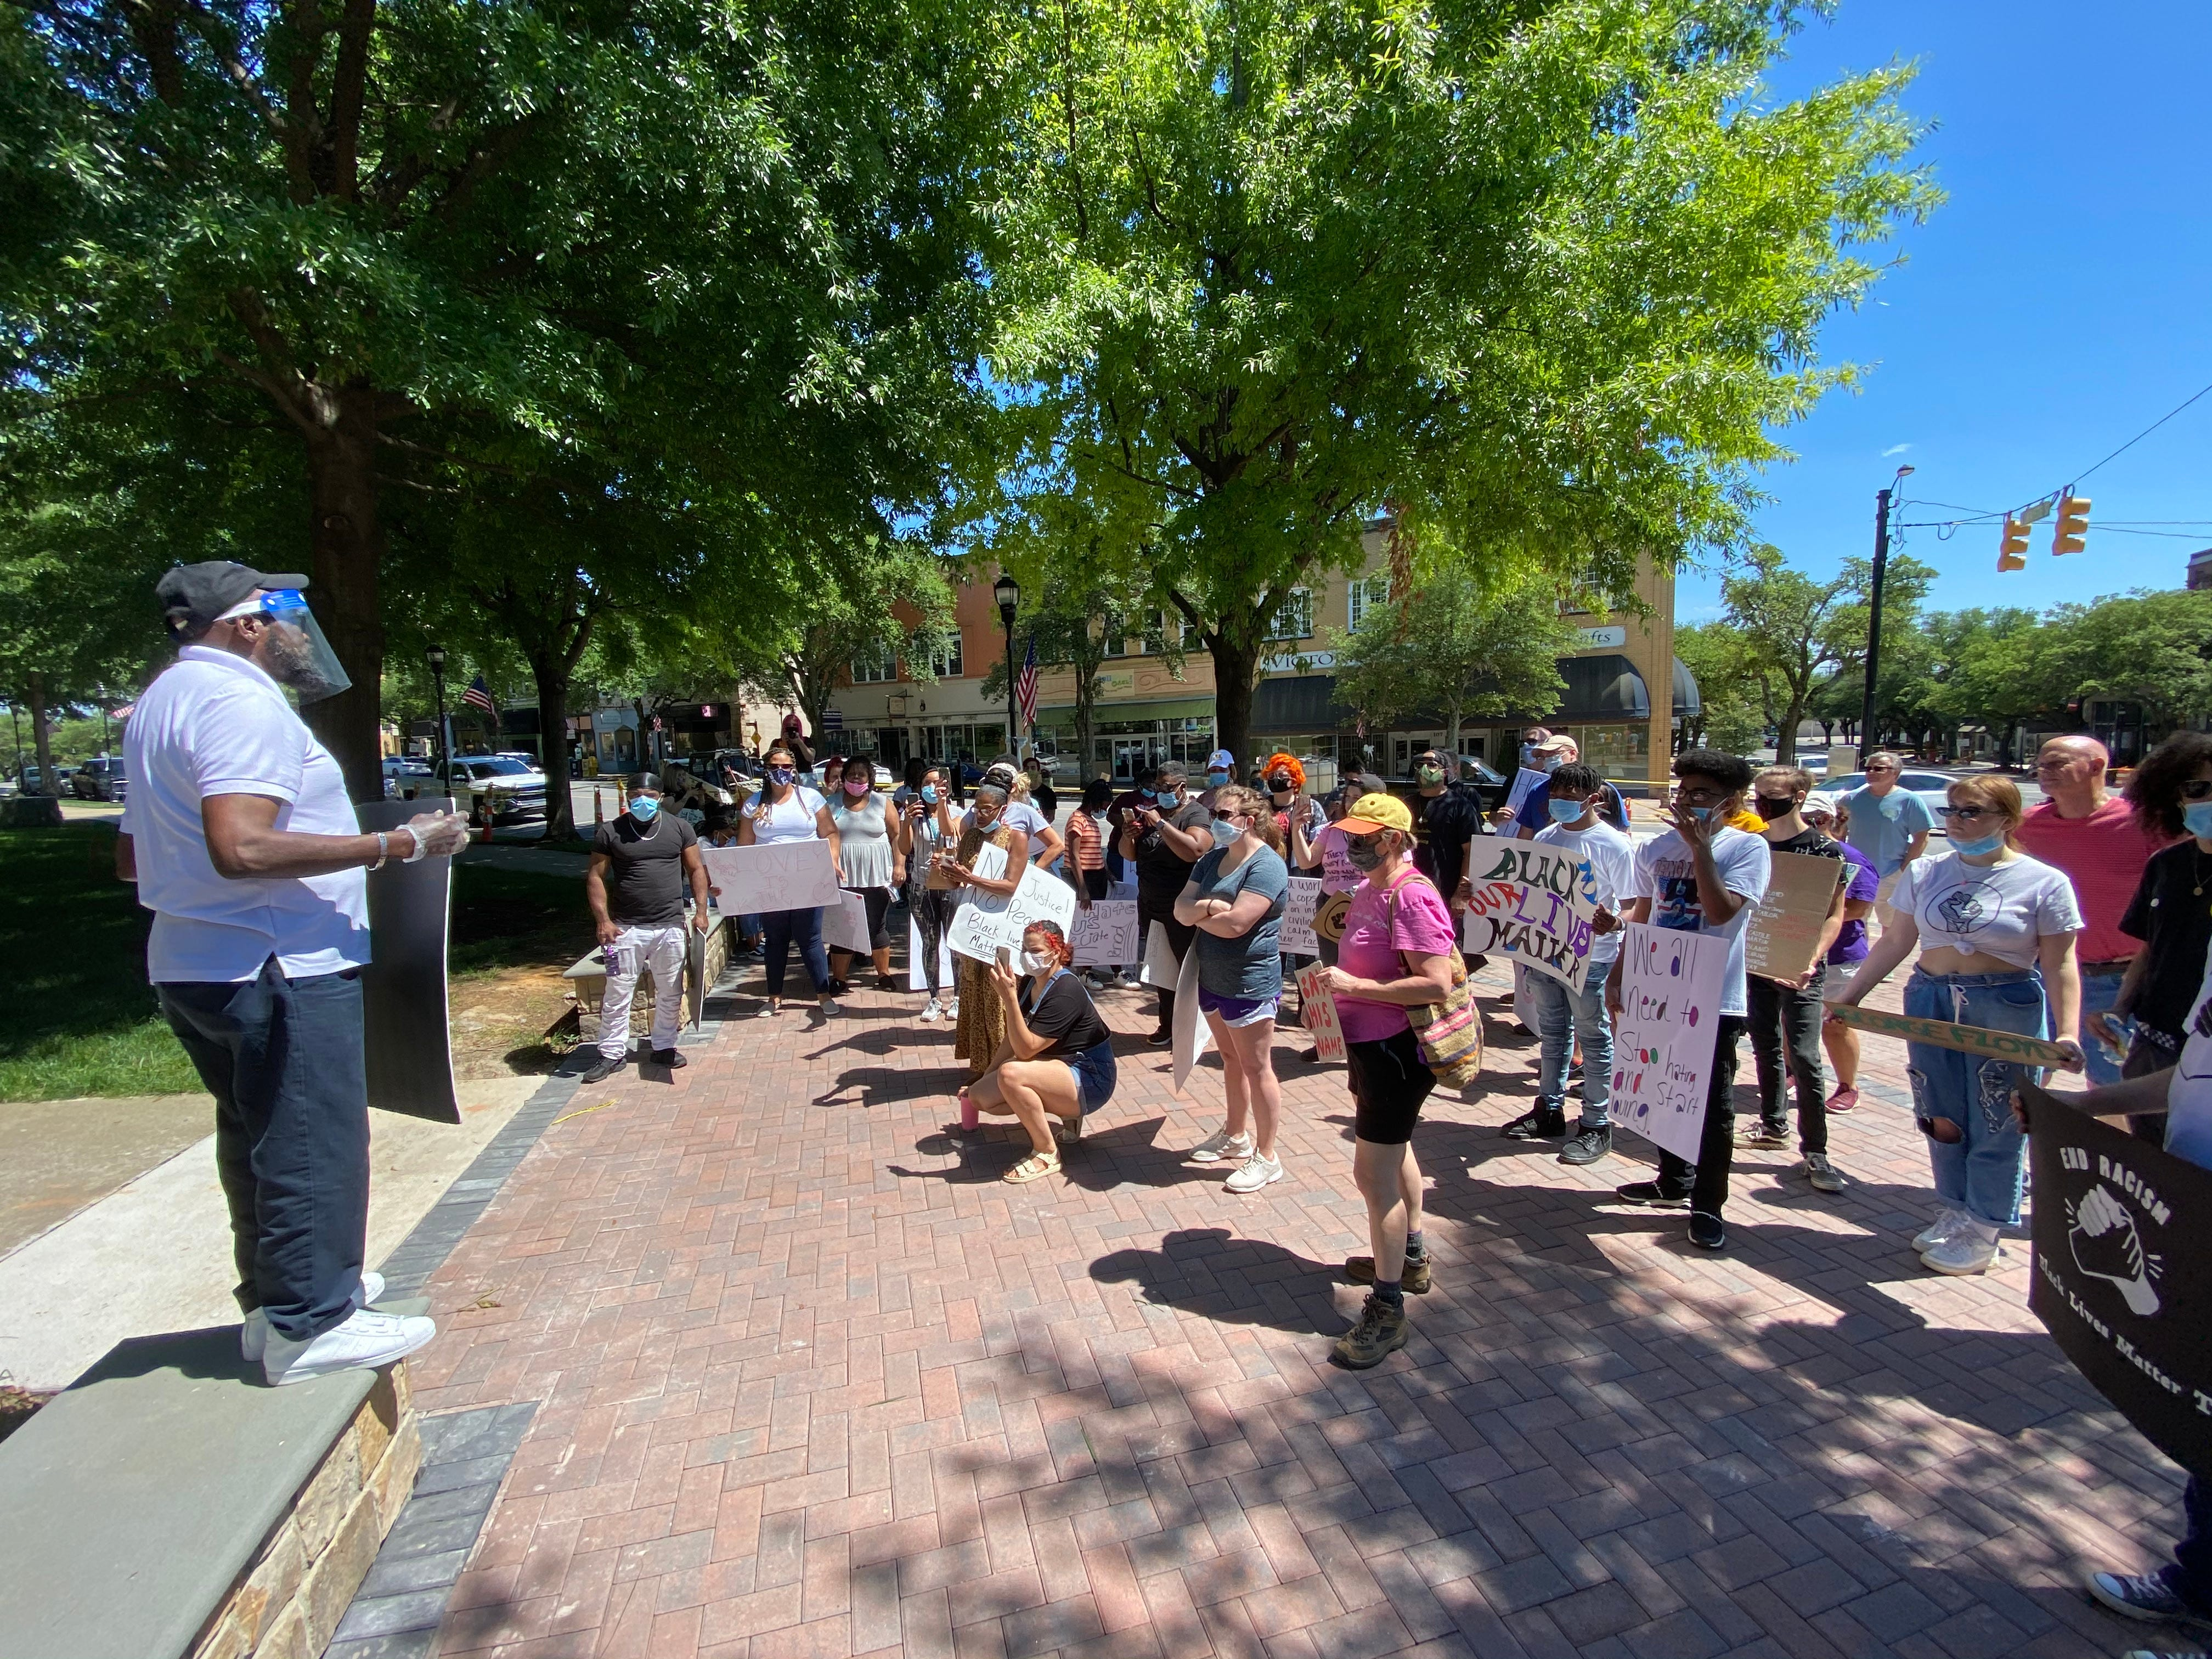 The Rev. Billy Houze speaks to a group of protesters that assembled Sunday.